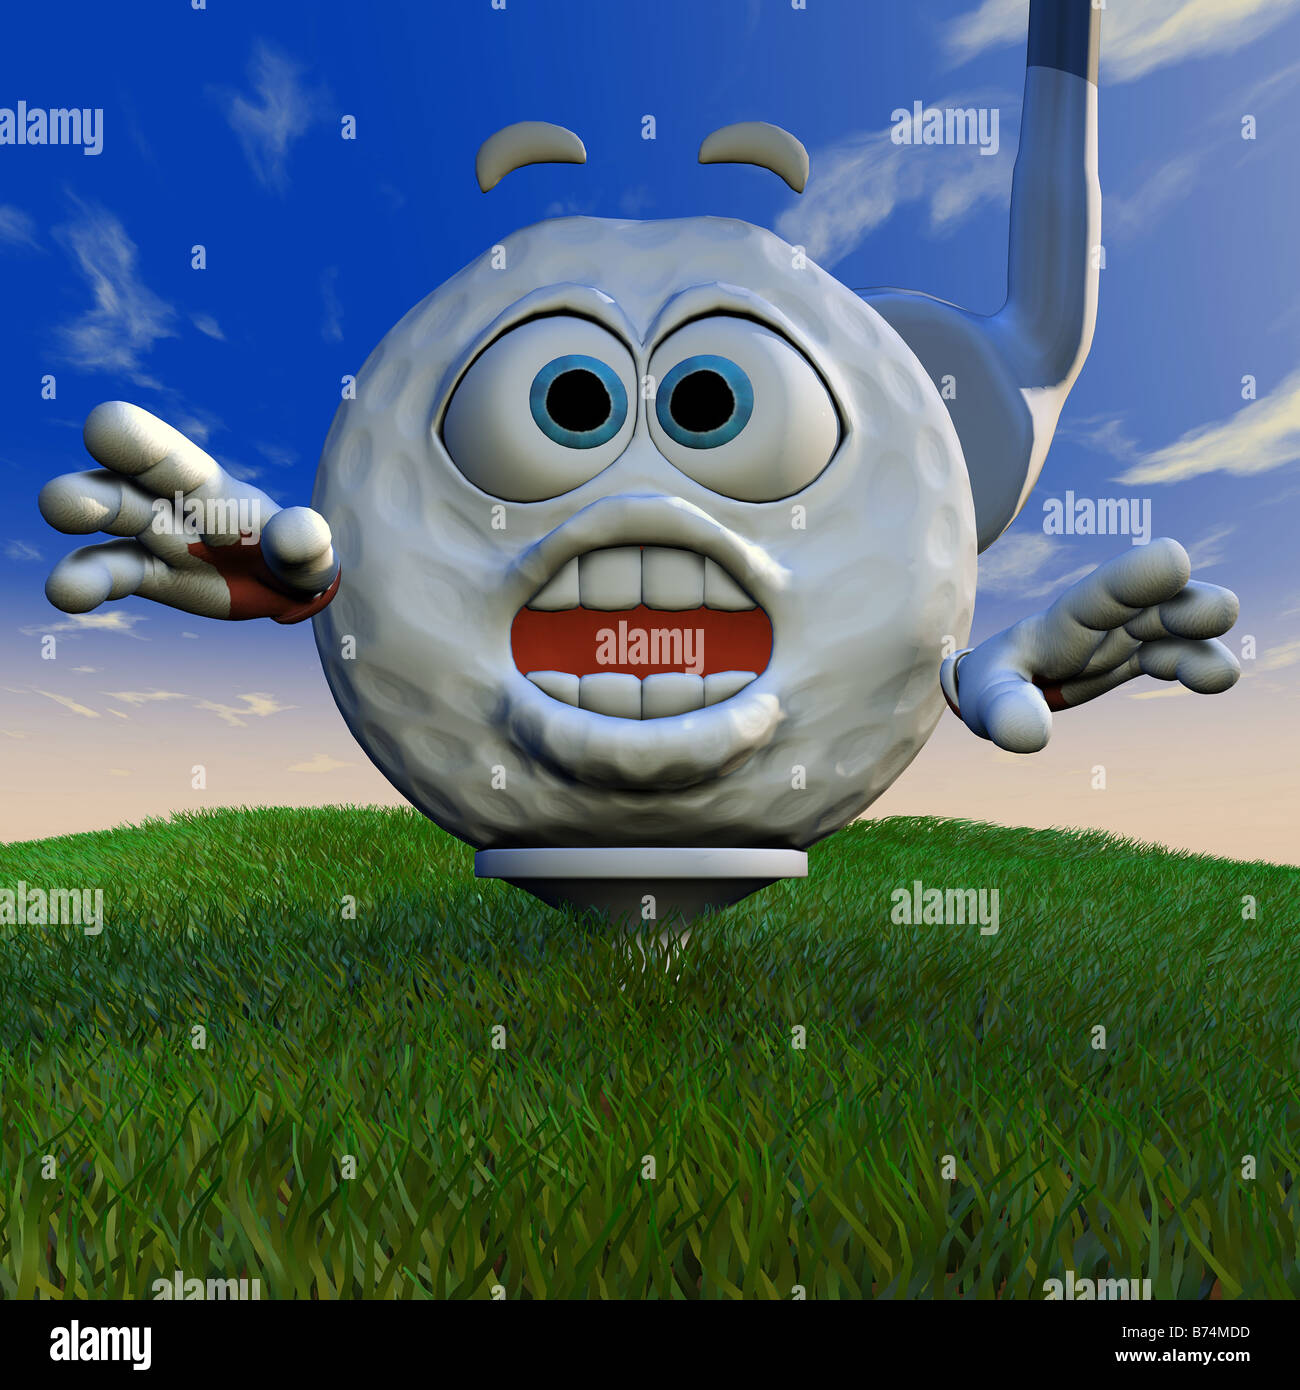 Cartoon golf ball who is about to be driven on to the course is scared - Stock Image